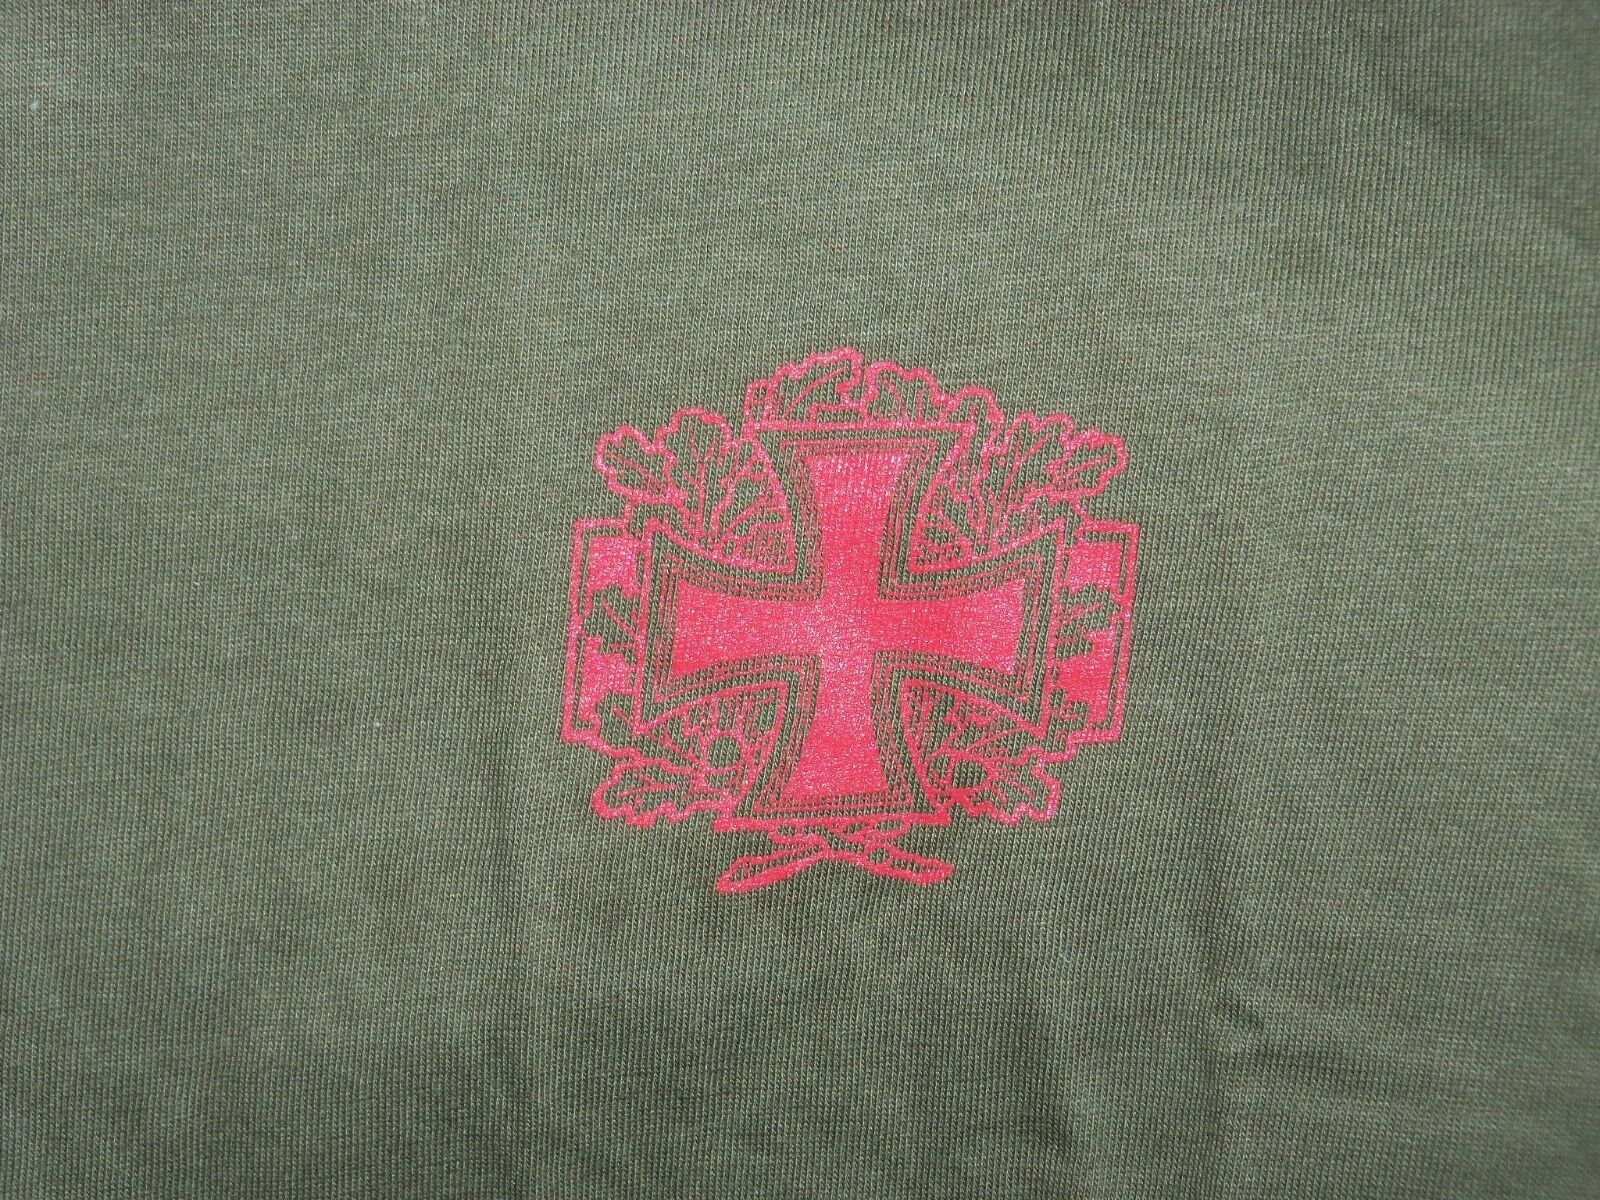 OFFICIAL DER blueTHARSCH ISRAEL THE EASTERN FRONT T-SHIRT 2004 RED ON KHAKI S XL